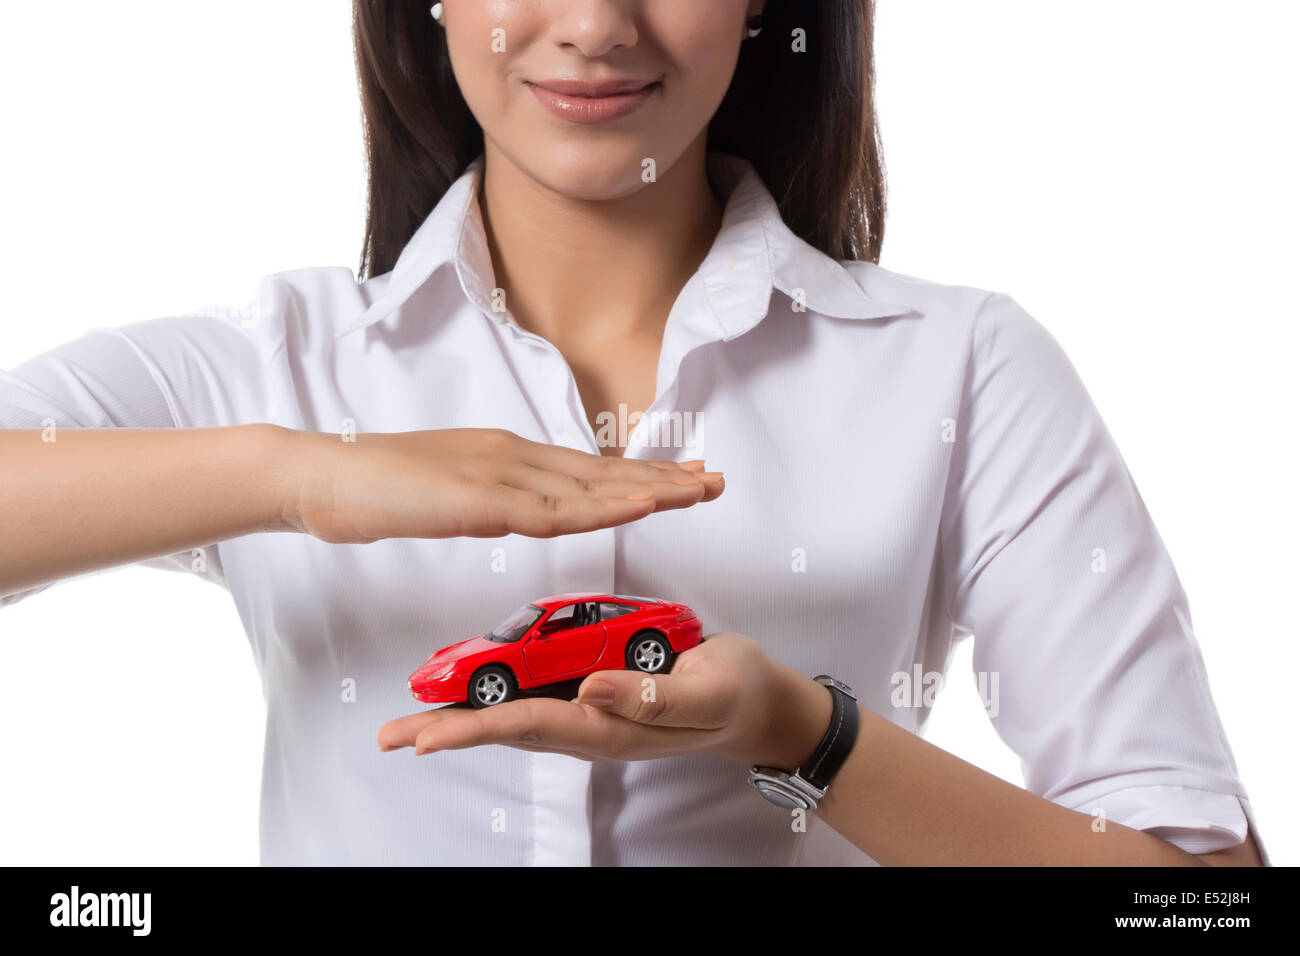 Midsection of young female insurance agent holding toy car against white background - Stock Image